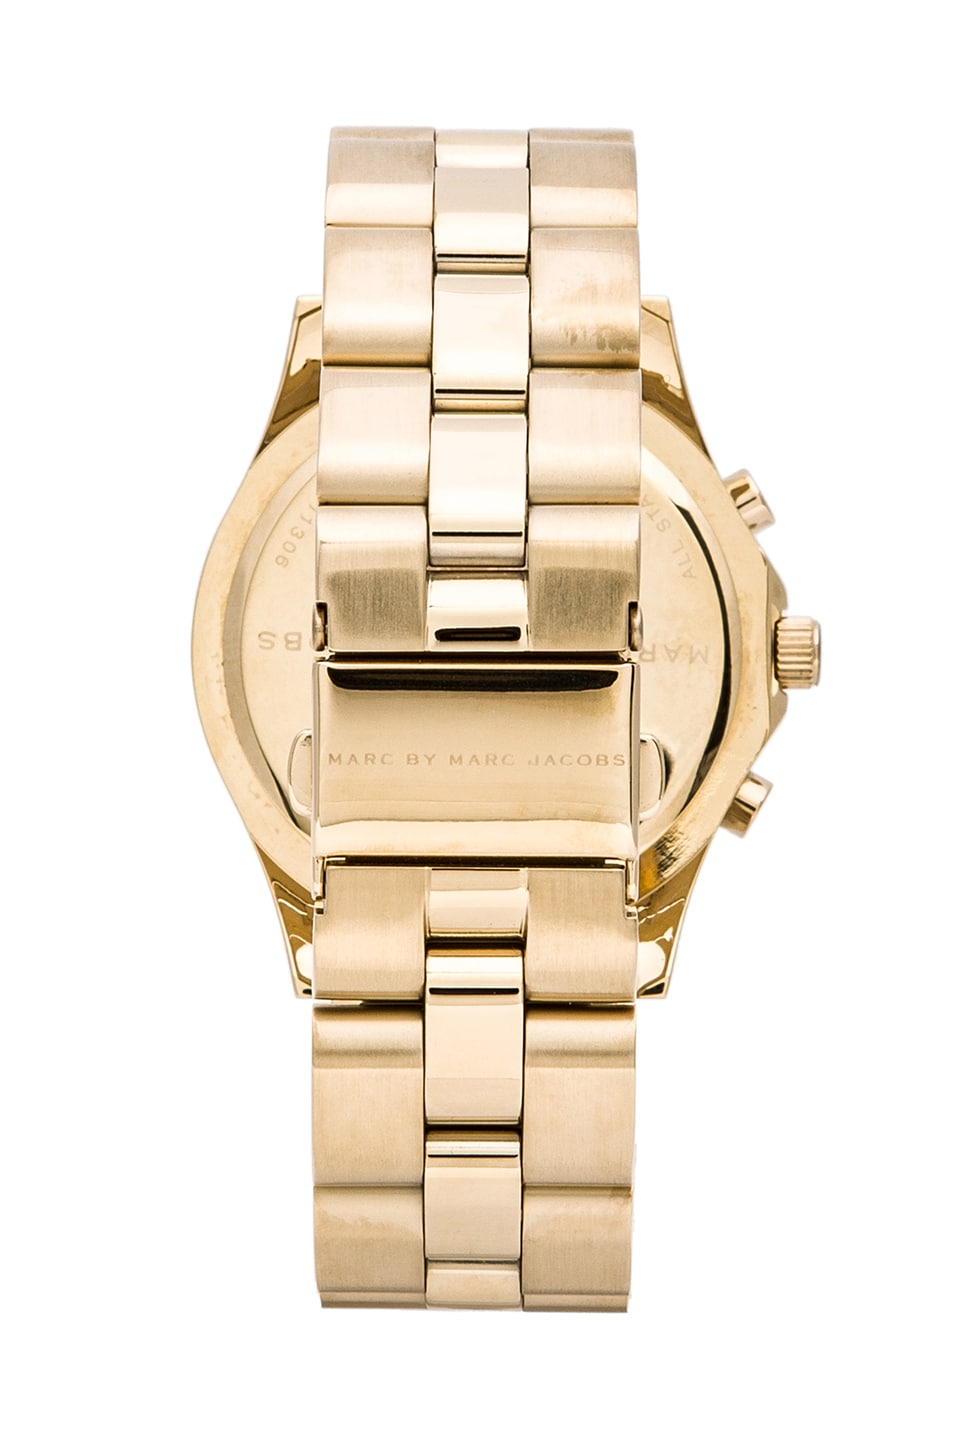 Marc by Marc Jacobs Blade Chrono Watch in Gold